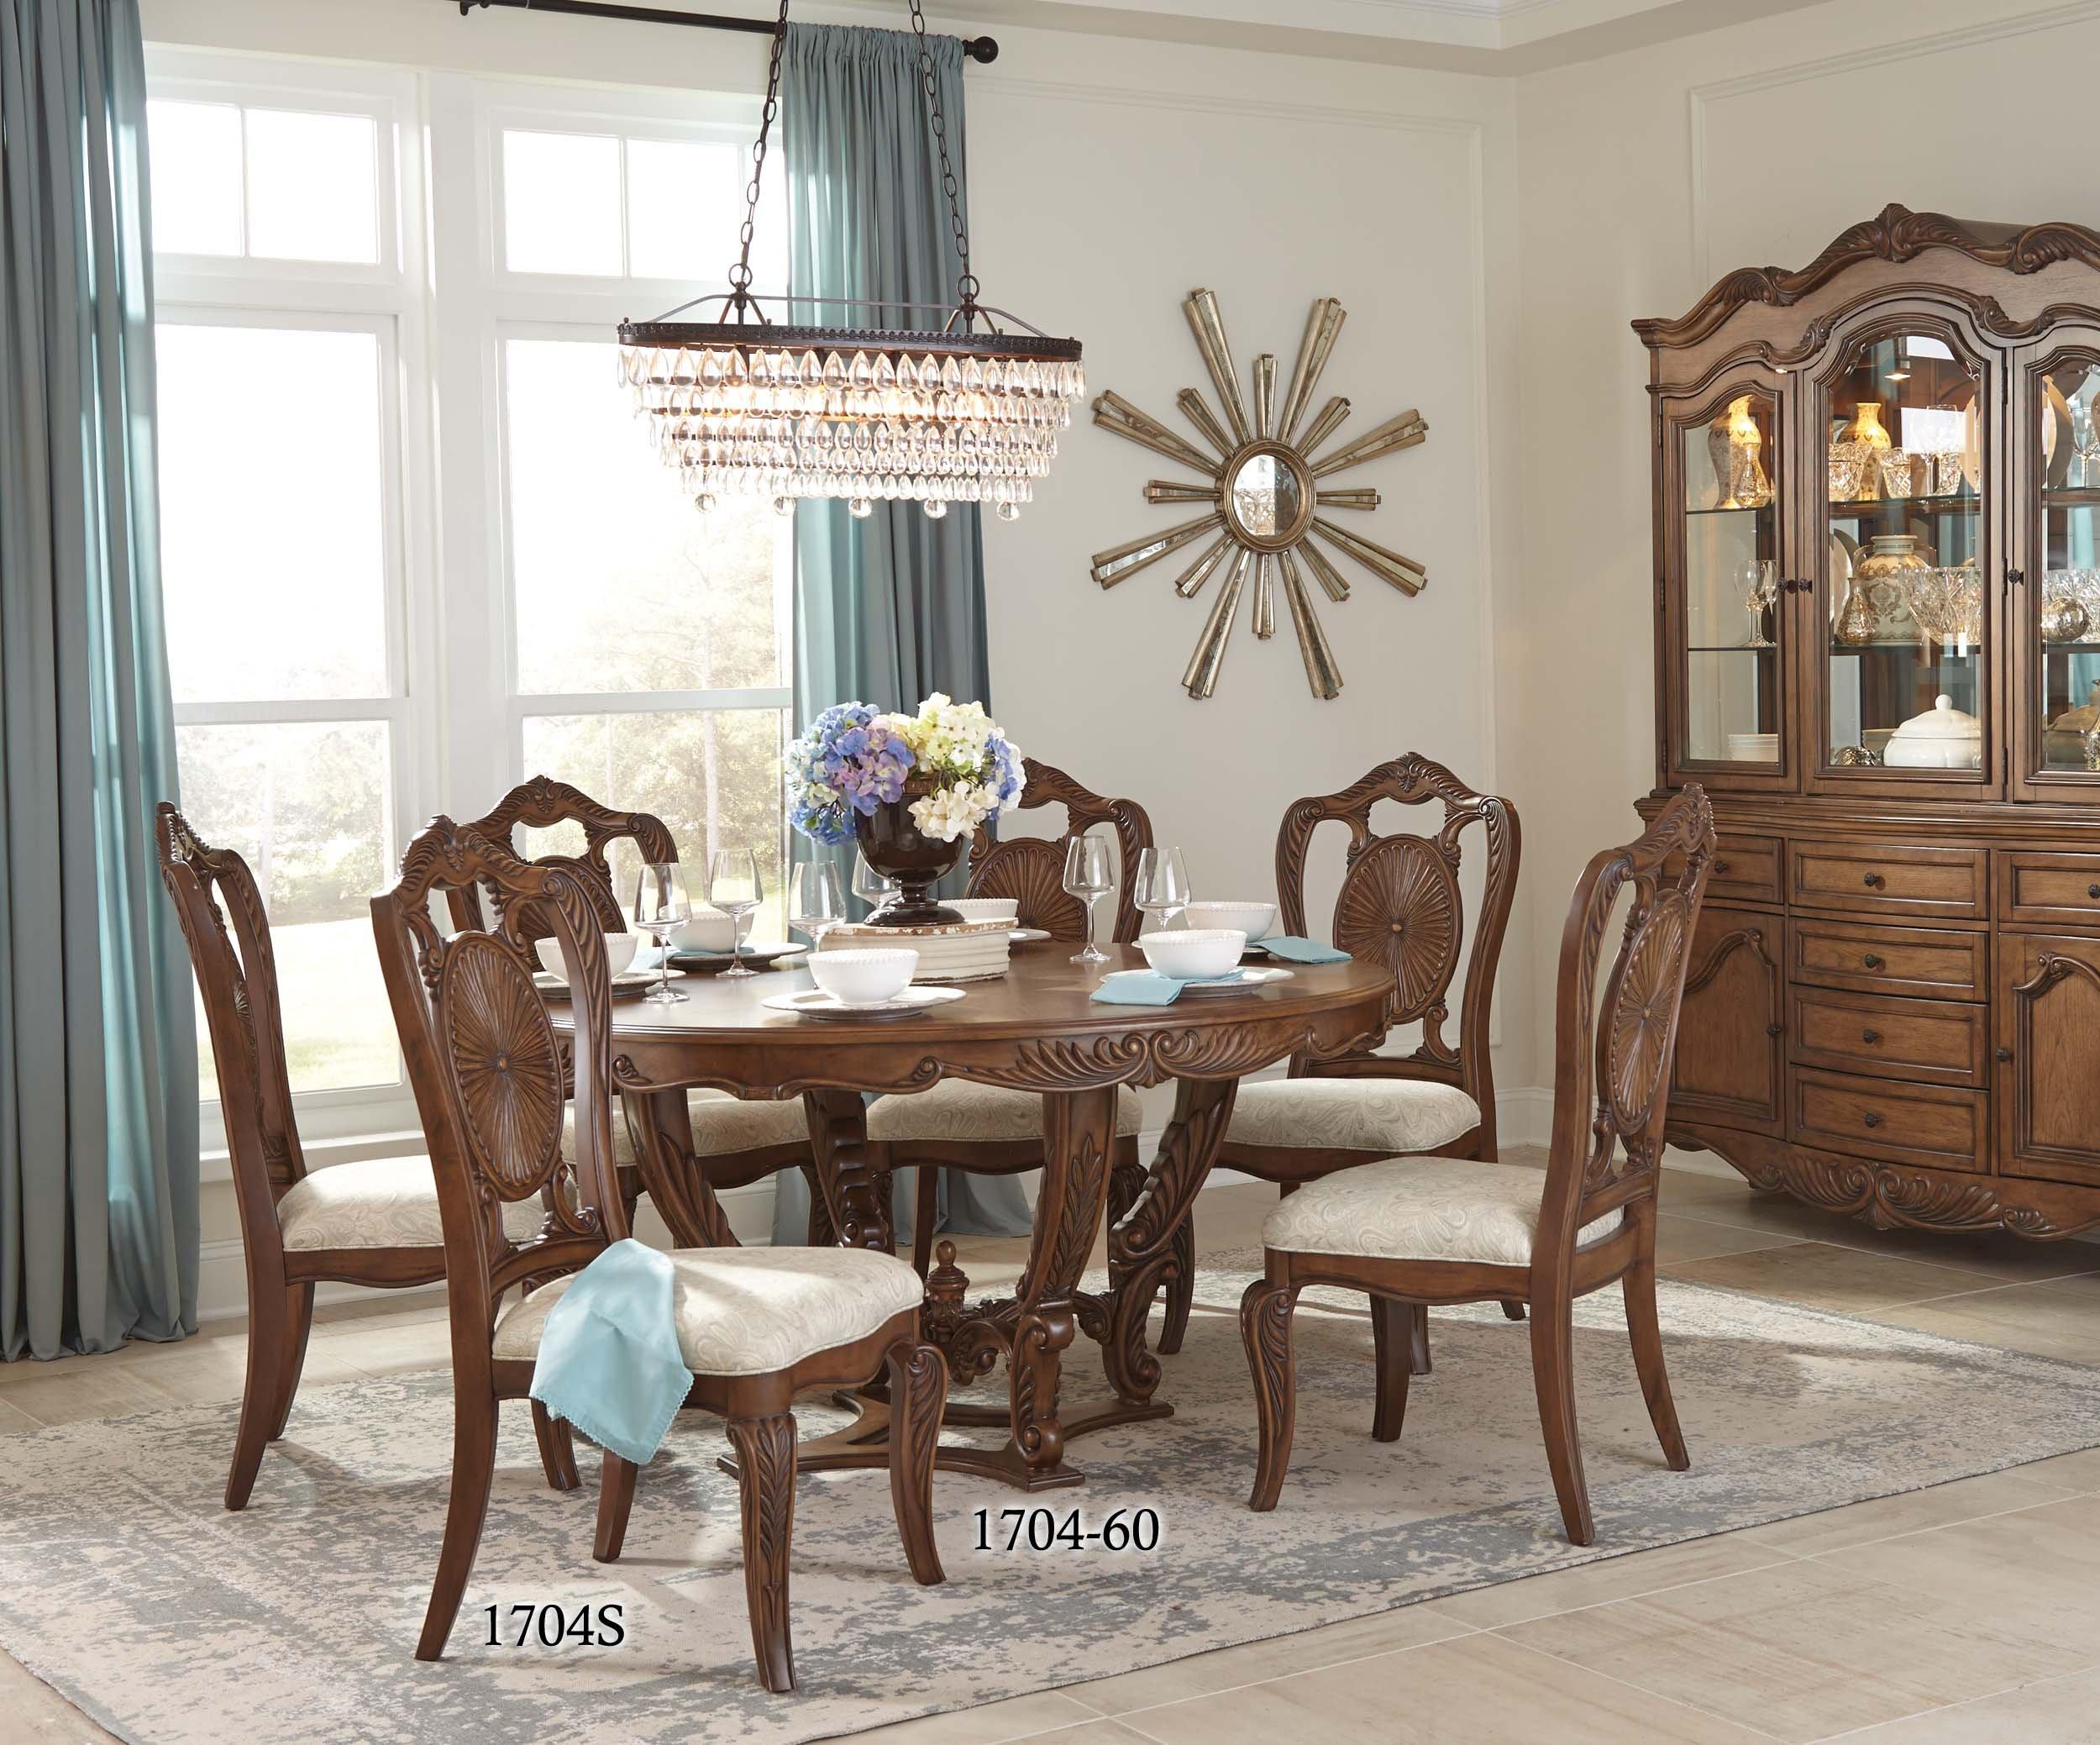 Homelegance Moorewood Park 60'' Round Dining Table, Pecan